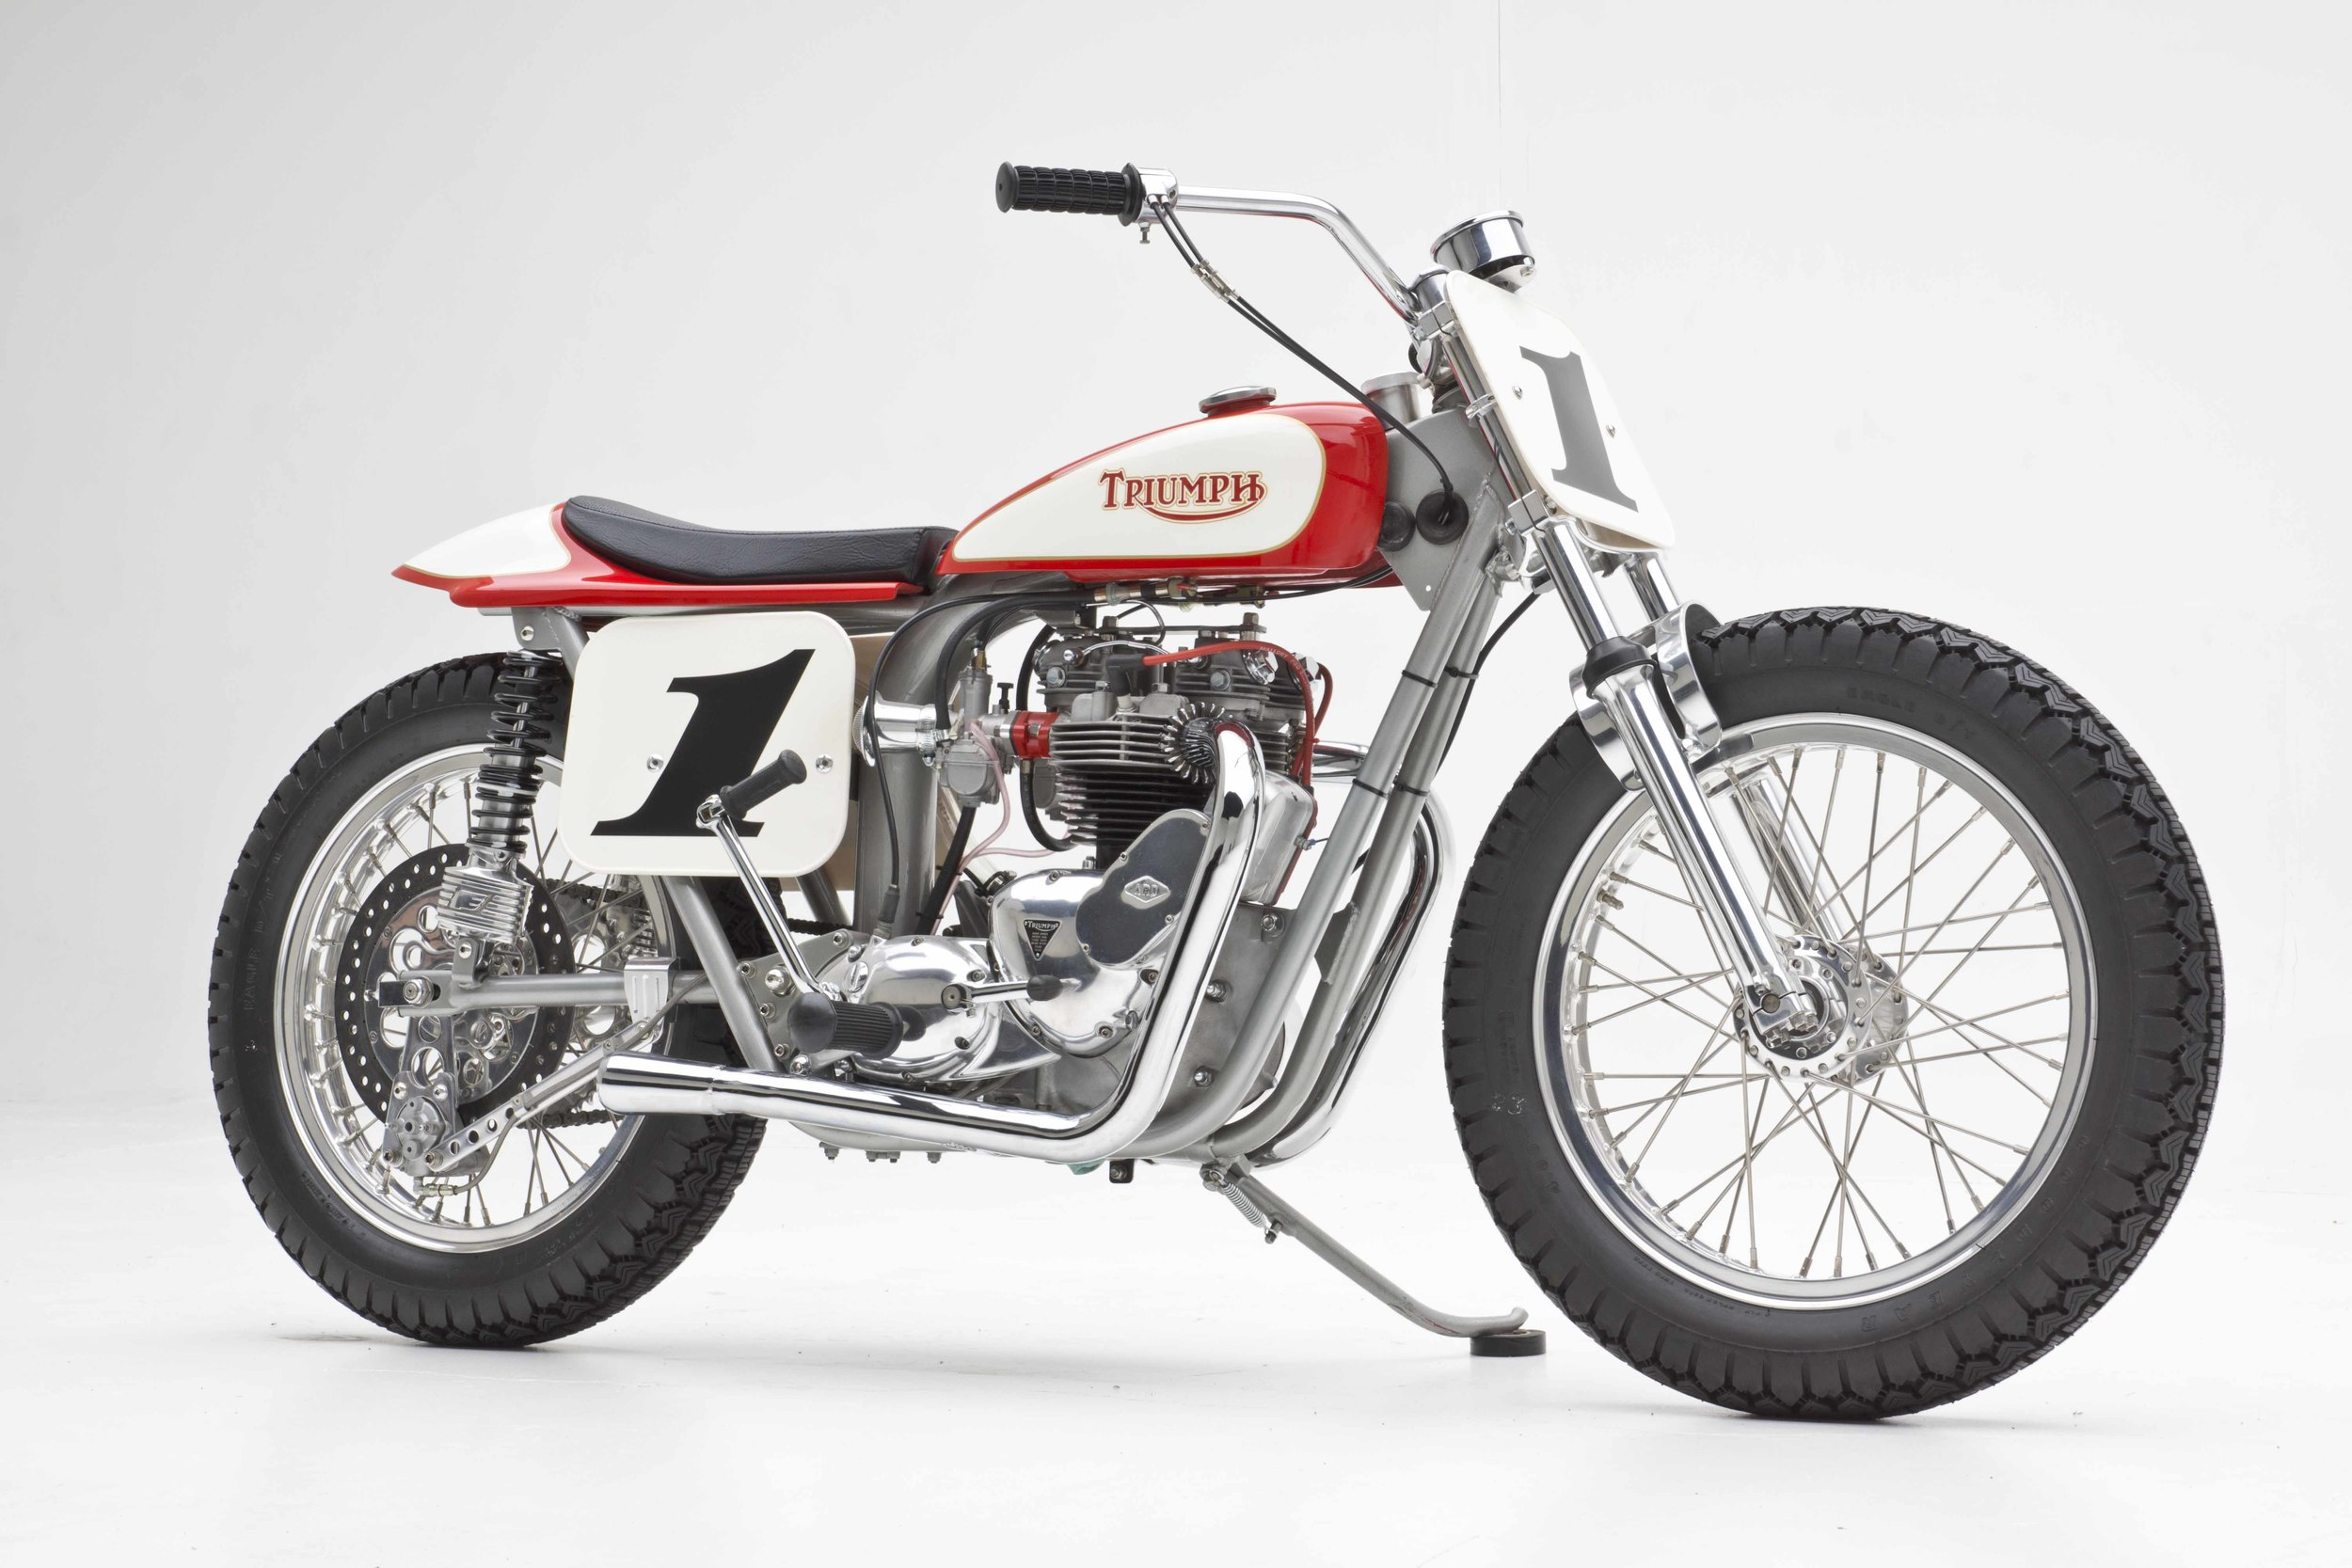 74' Triumph Dirt Tracker